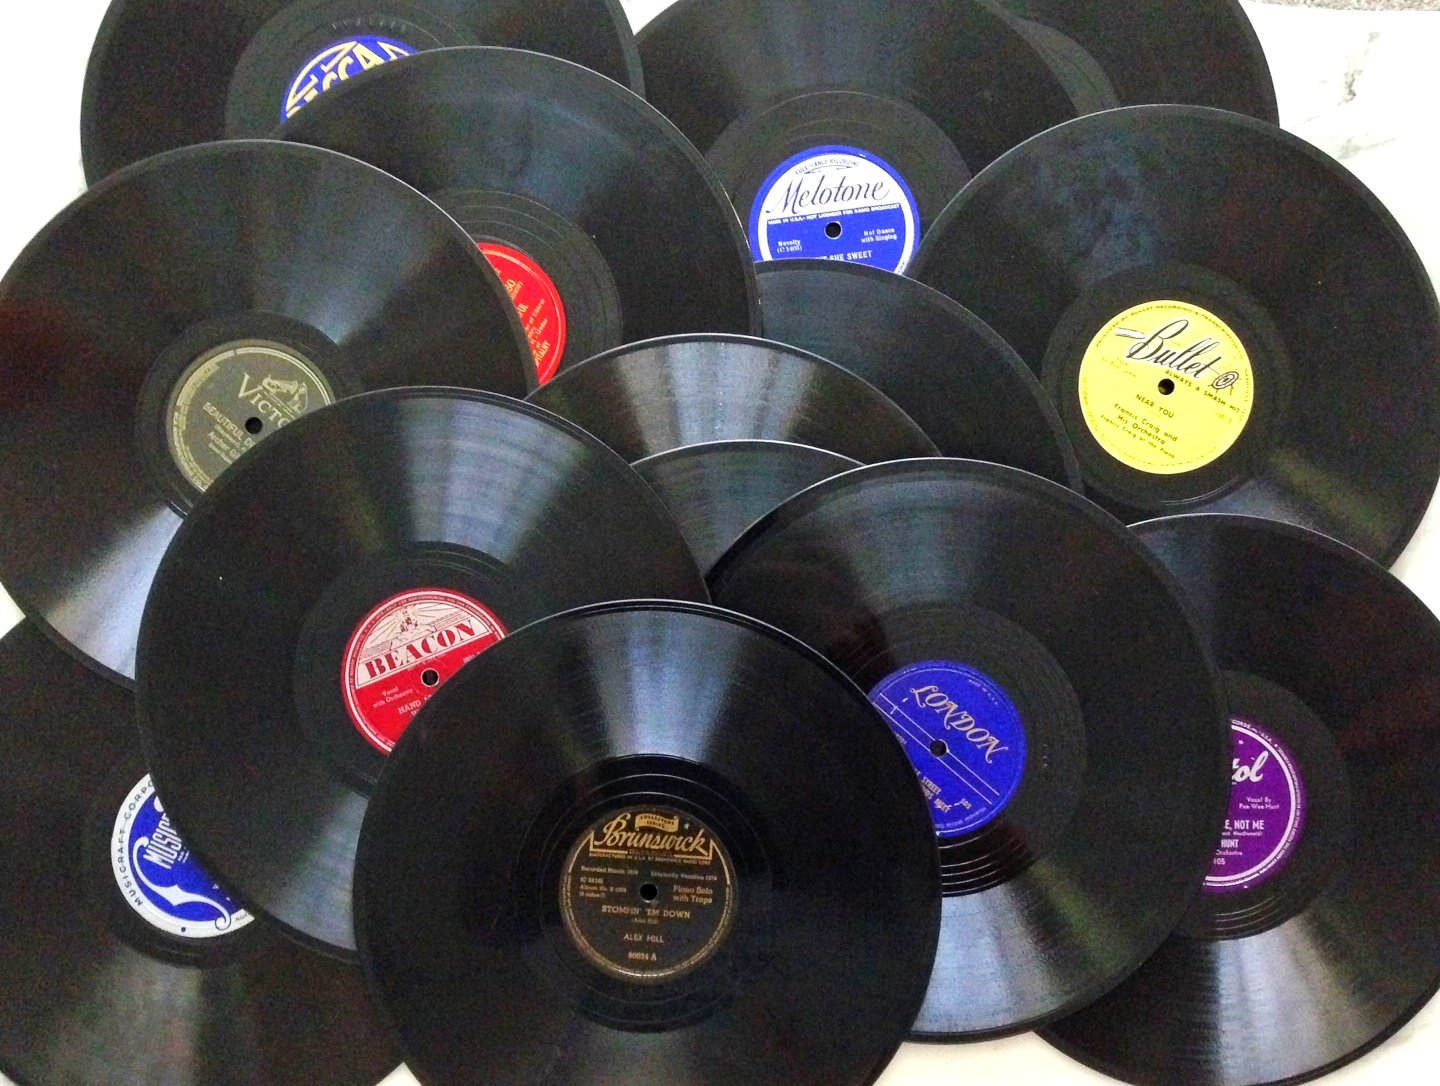 15 Real 10 Inch 78rpm Wwii Big Band Era Gramophone Records Arts Crafts Decoration Party Artwork The Warehouse Direct 4336980929 1541013136 319576 19 72